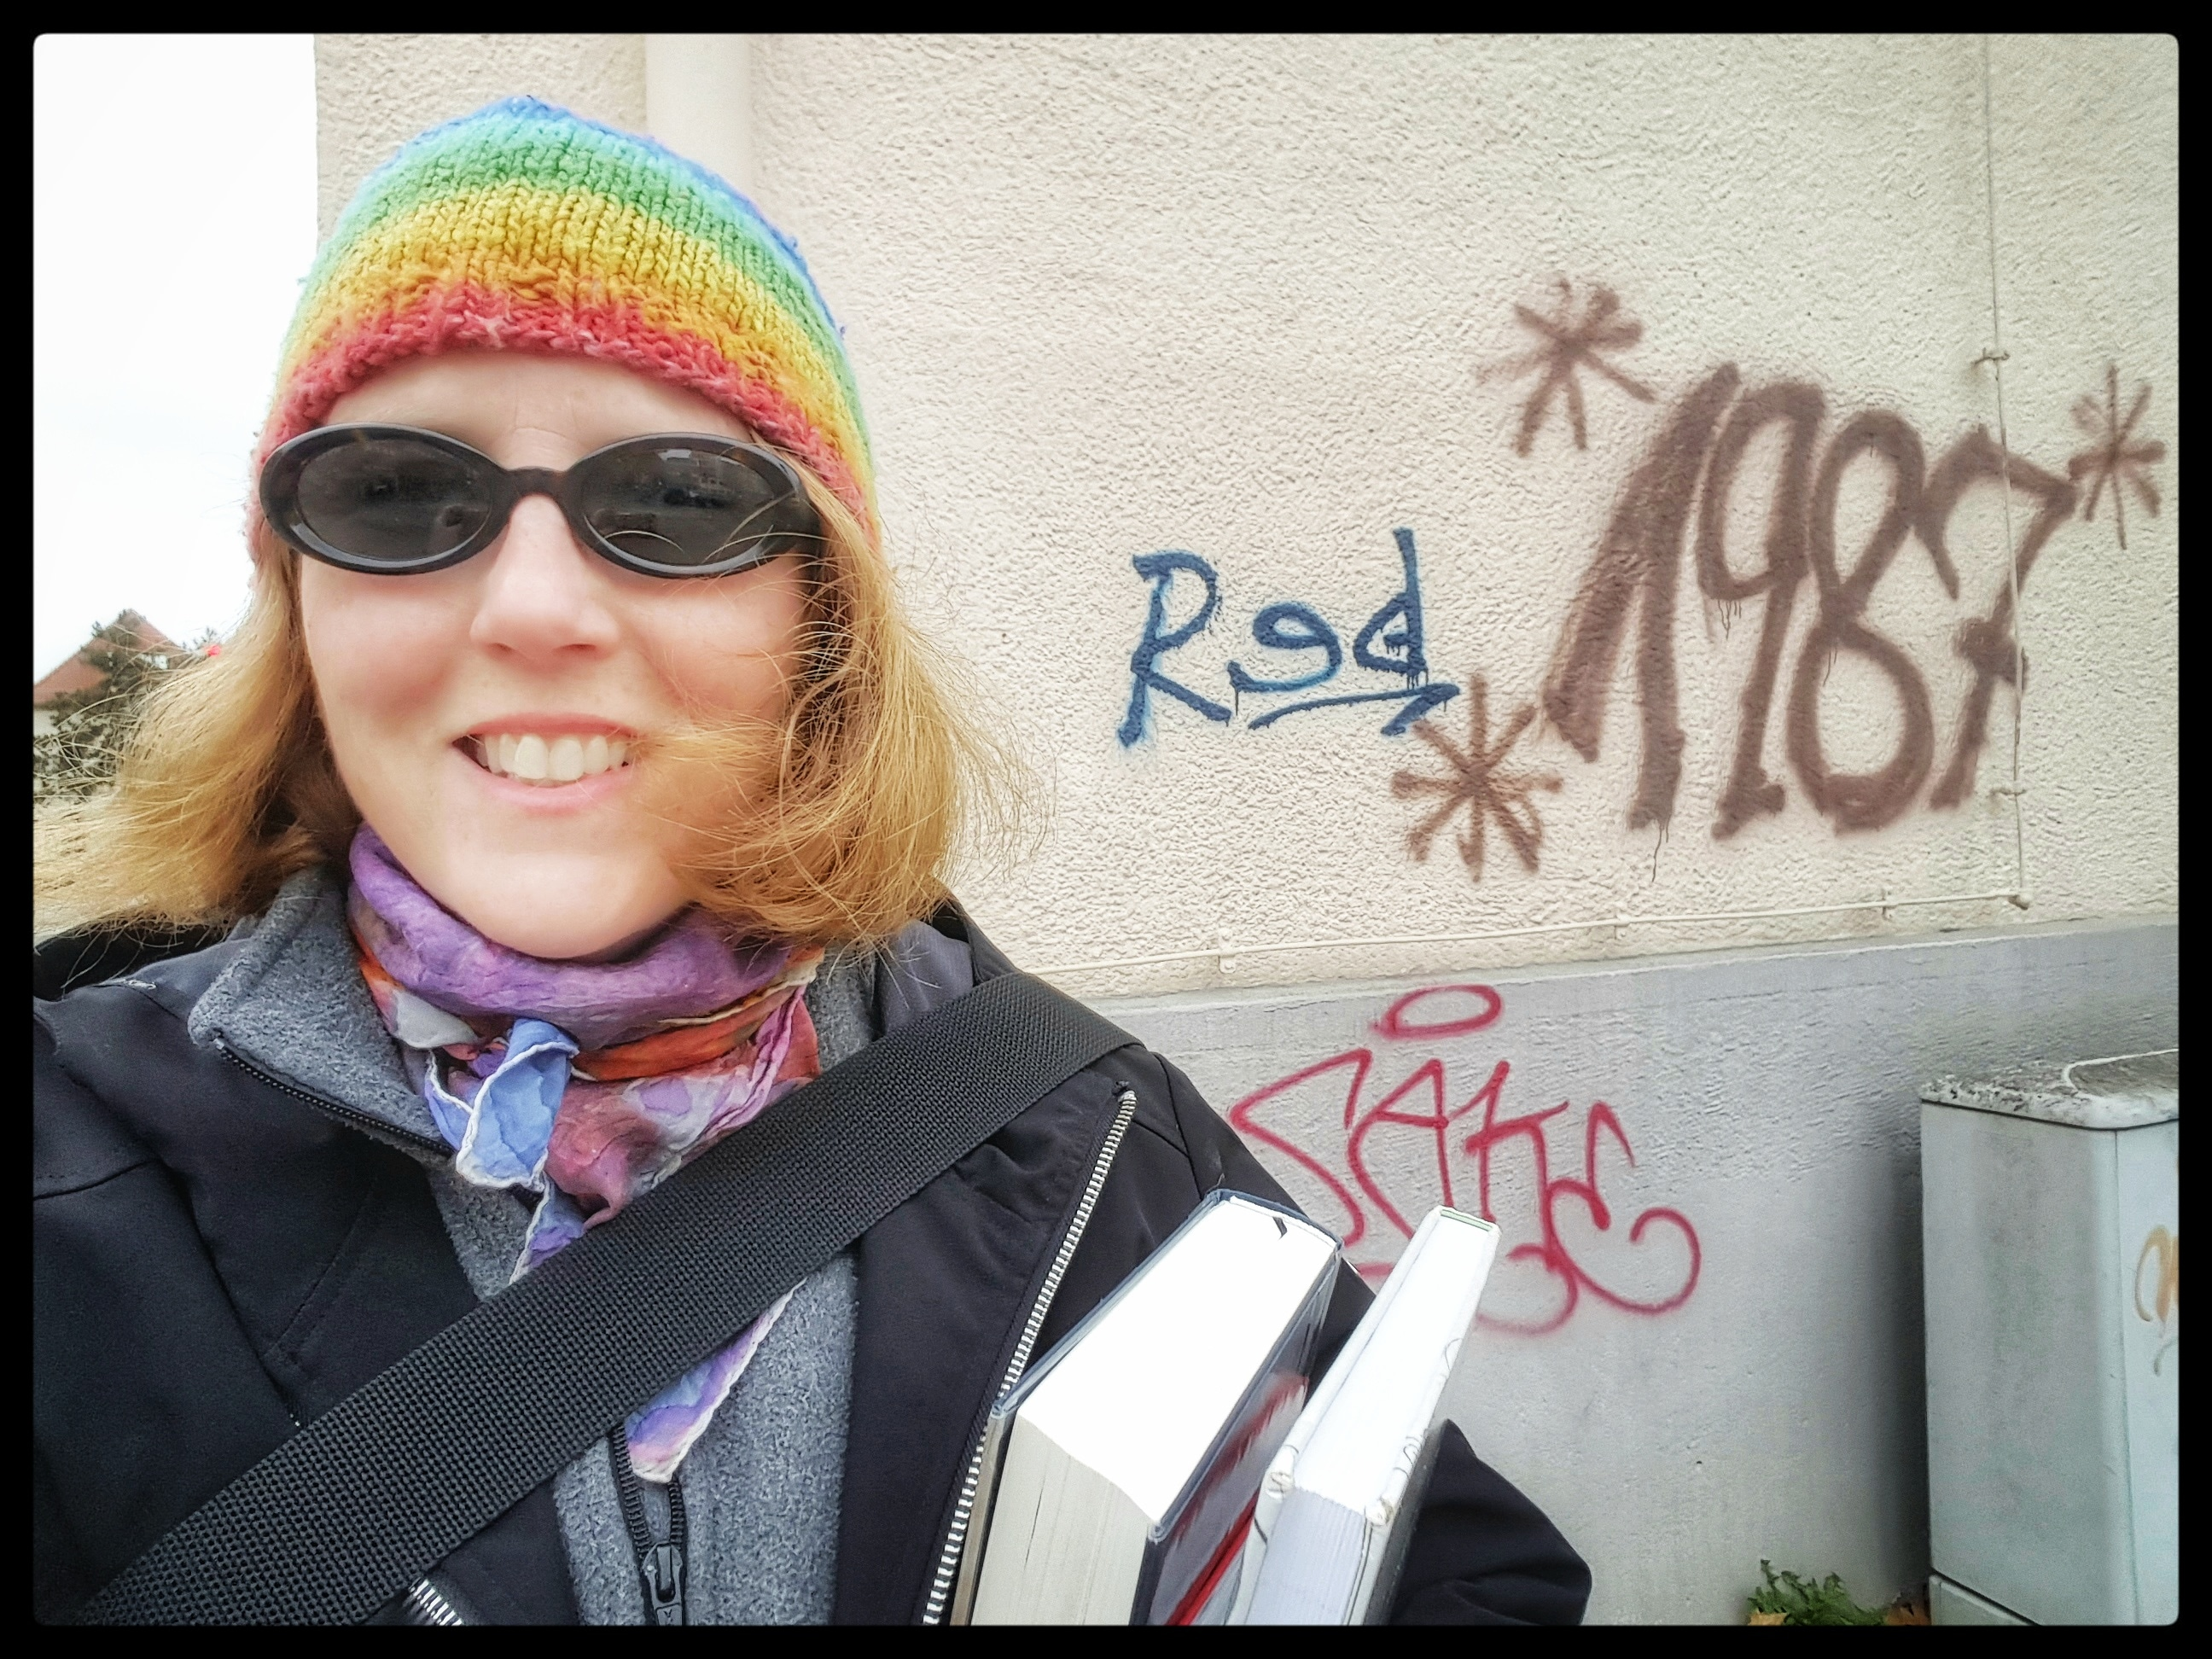 Layers and rainbows is how I roll. Photo by Dragonfly Leathrum